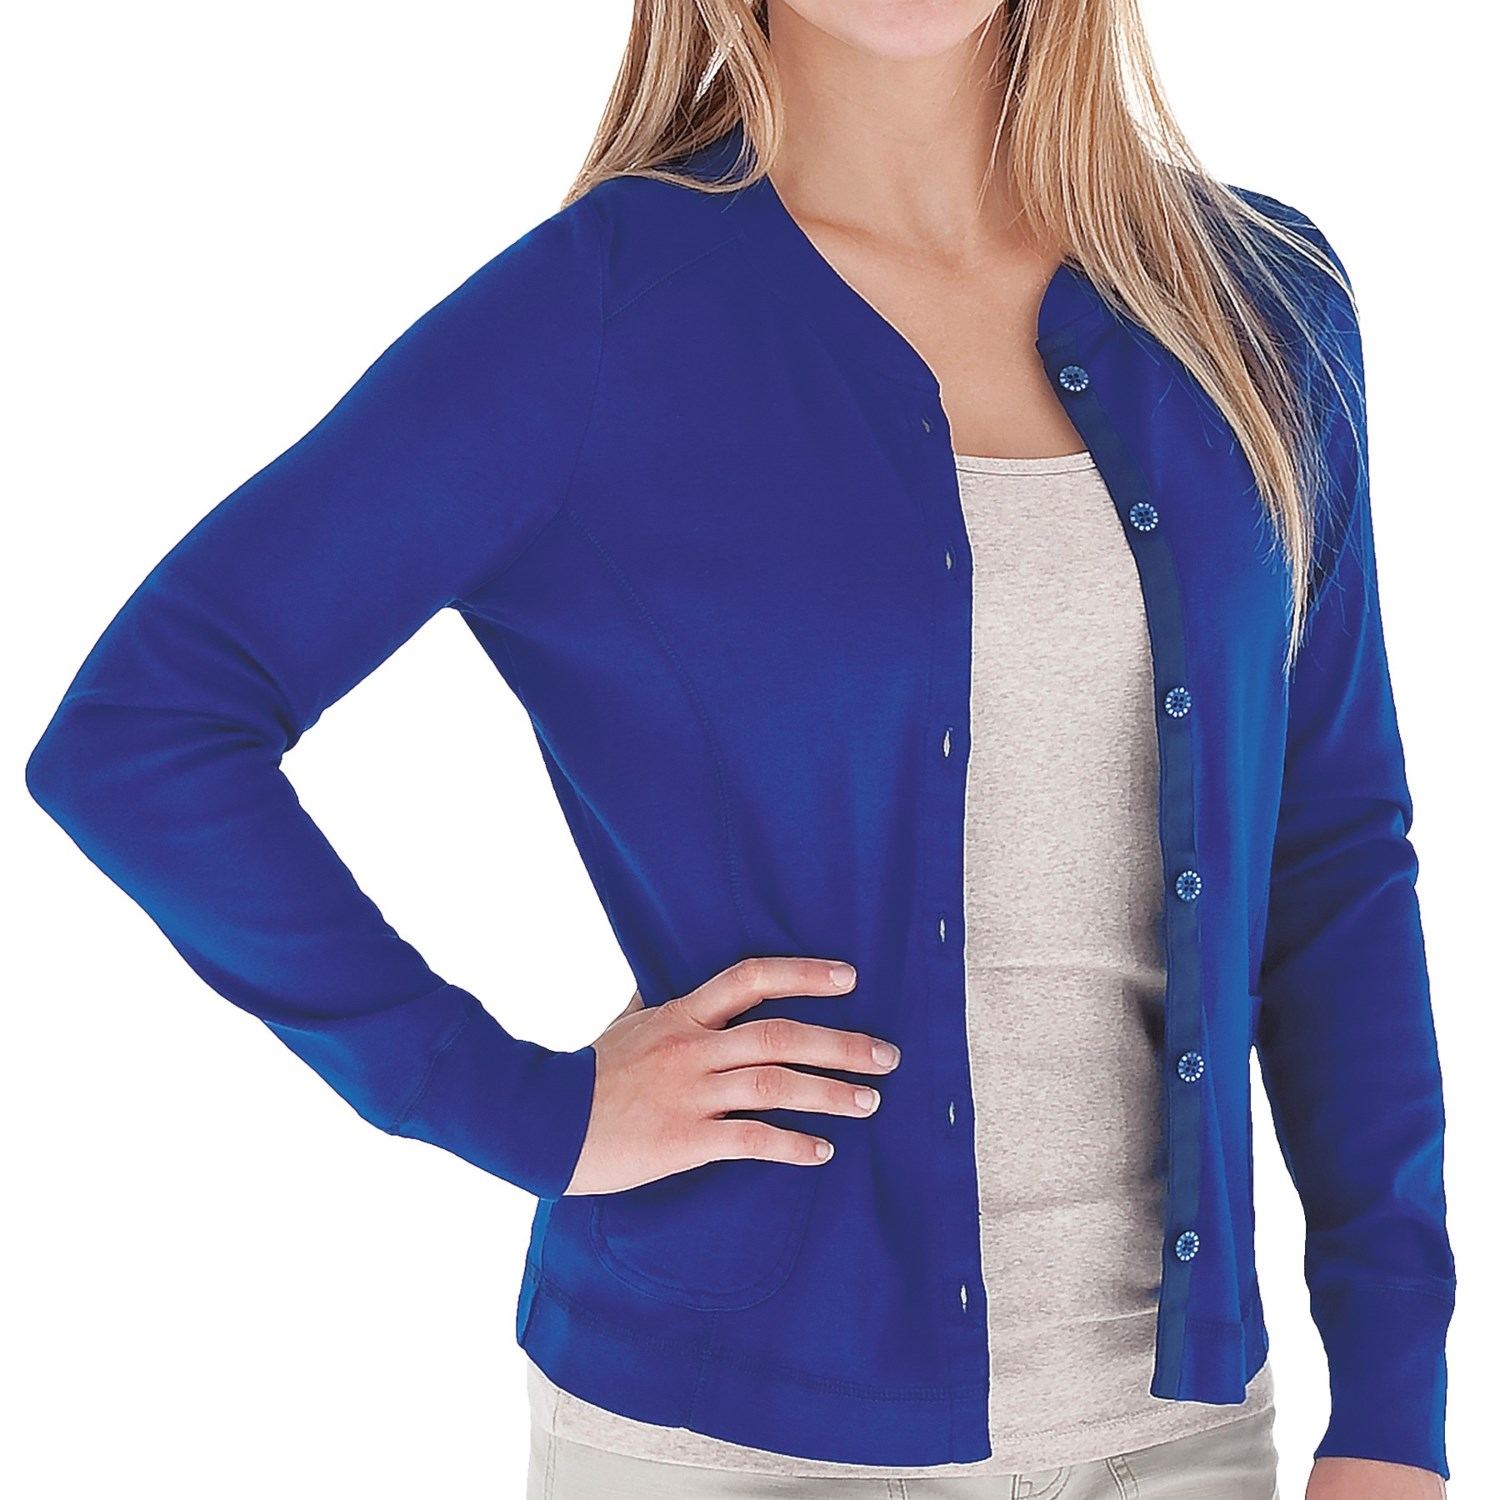 Shop our Collection of Women's Blue Cardigan Sweaters at hereyfiletk.gq for the Latest Designer Brands & Styles. FREE SHIPPING AVAILABLE!